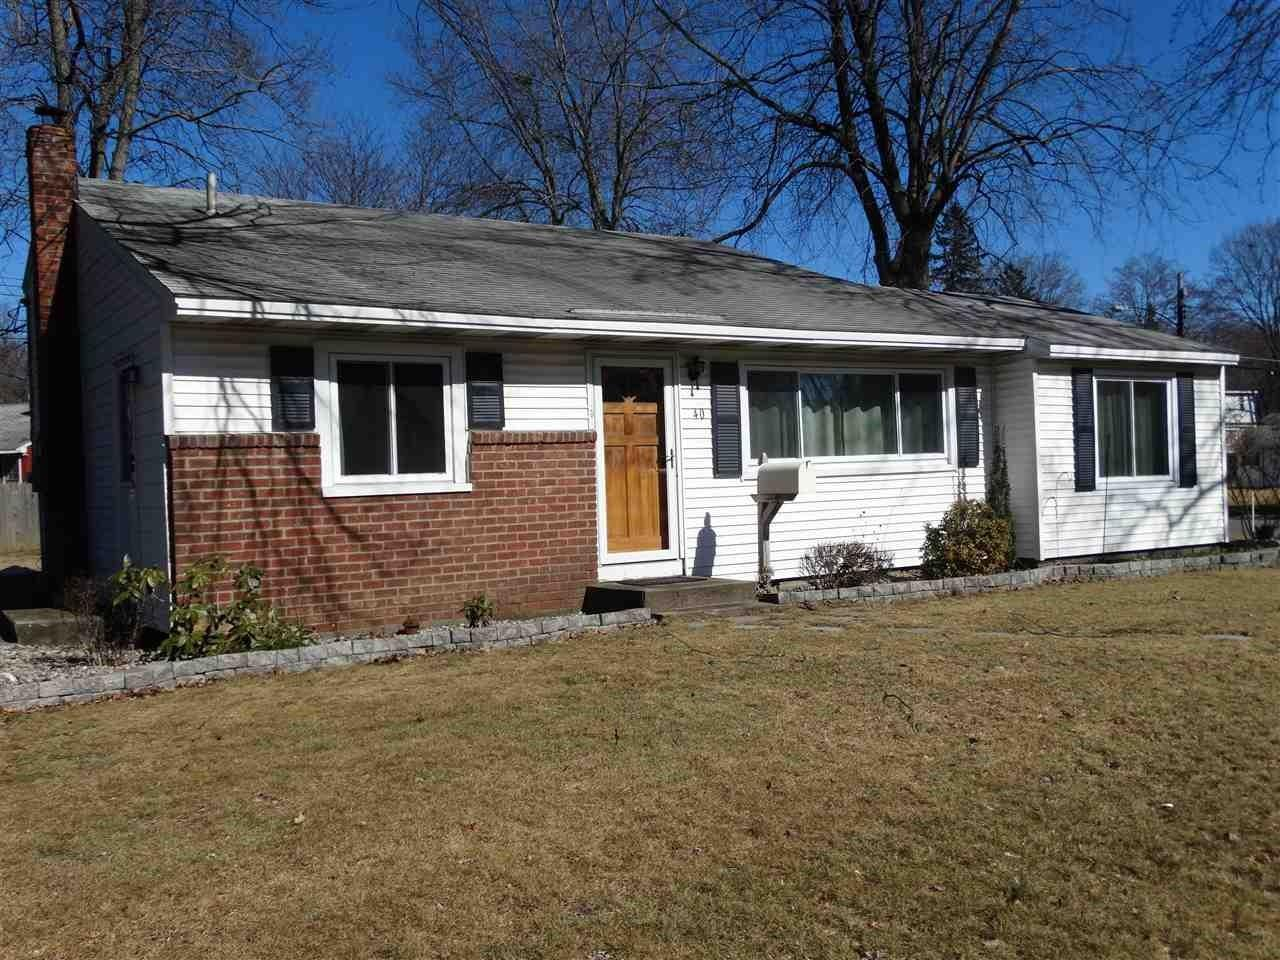 New york albany county albany 12205 - 40 Hunting Rd